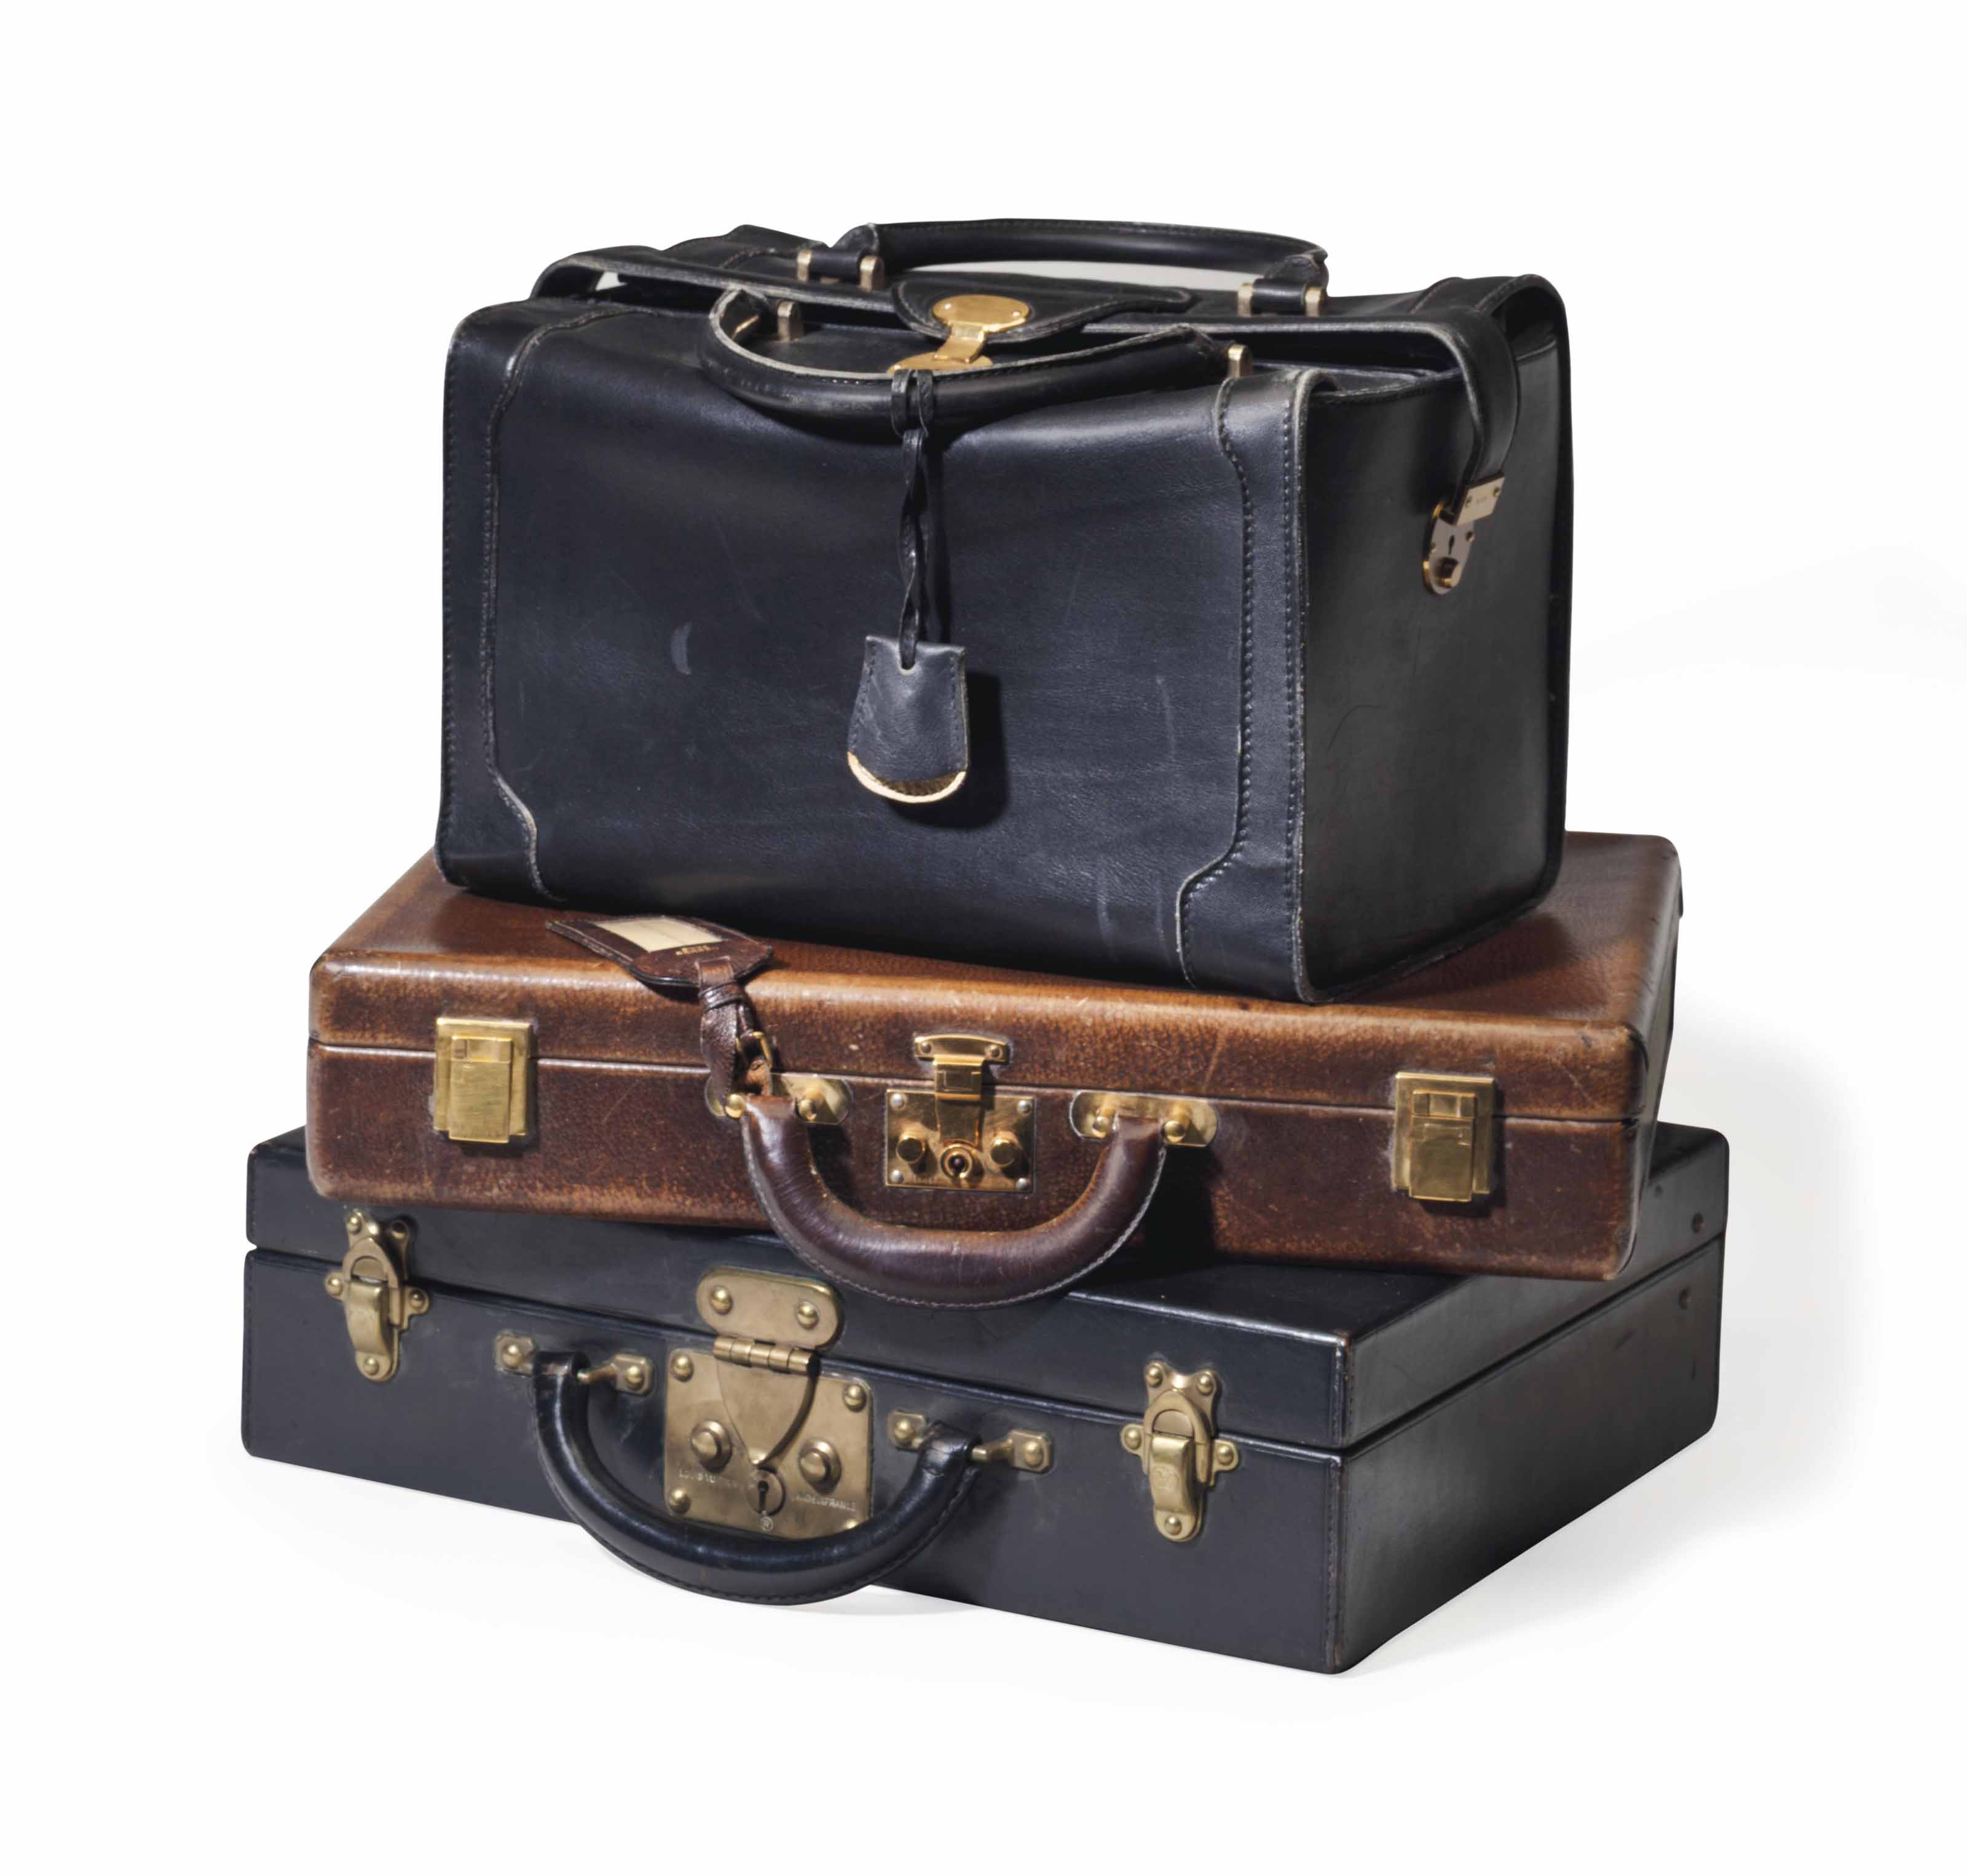 THREE PIECES OF MEN'S LEATHER HAND LUGGAGE